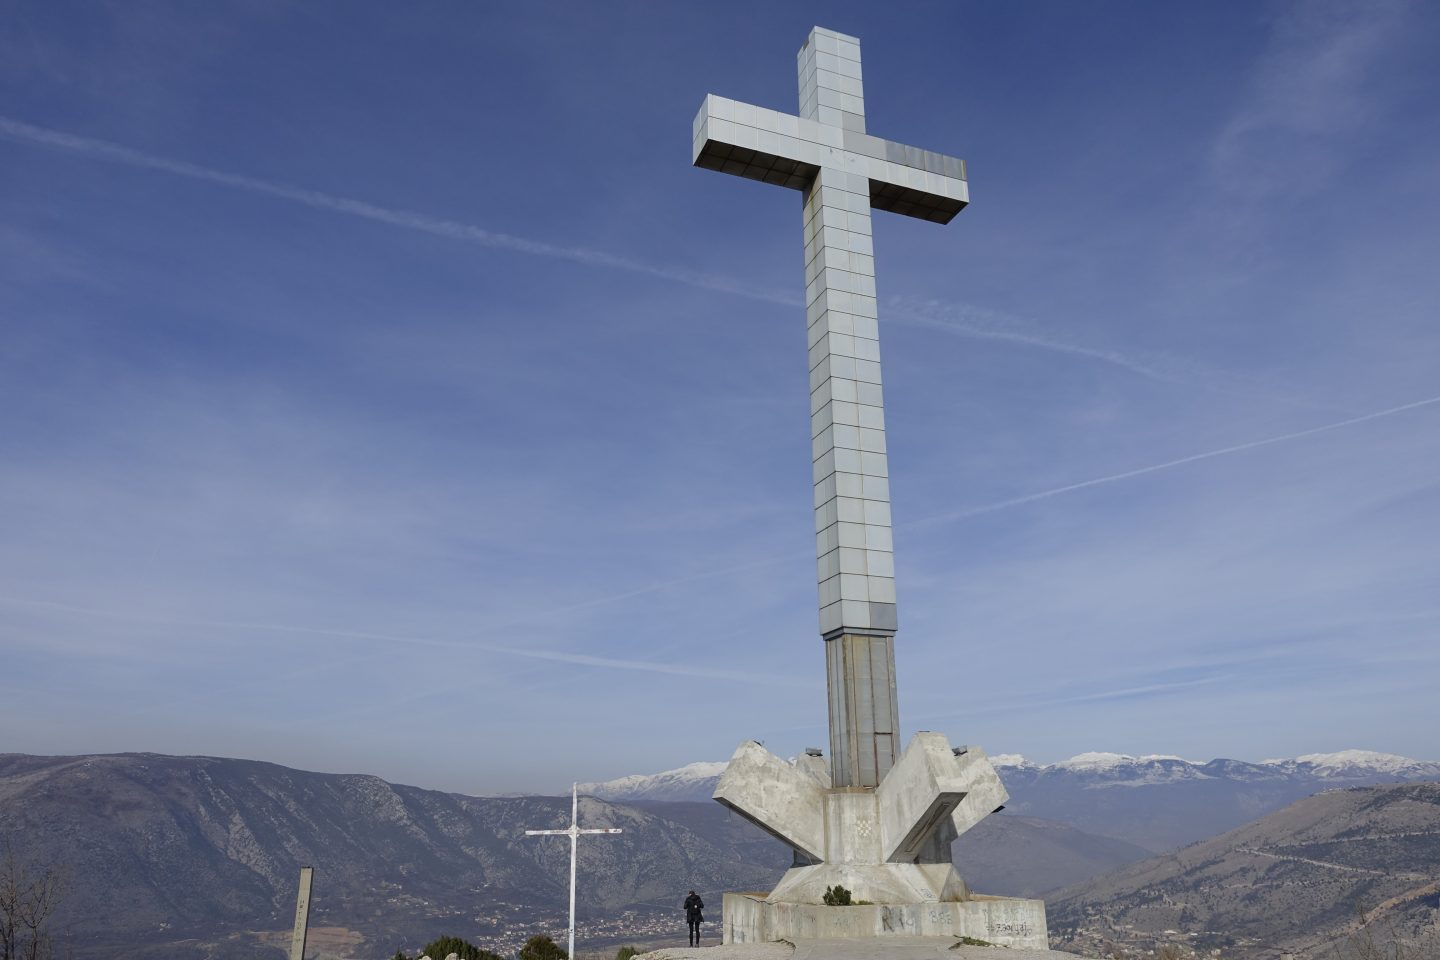 """Hiking to the """"Millenium cross"""" on hum hill in Mostar"""